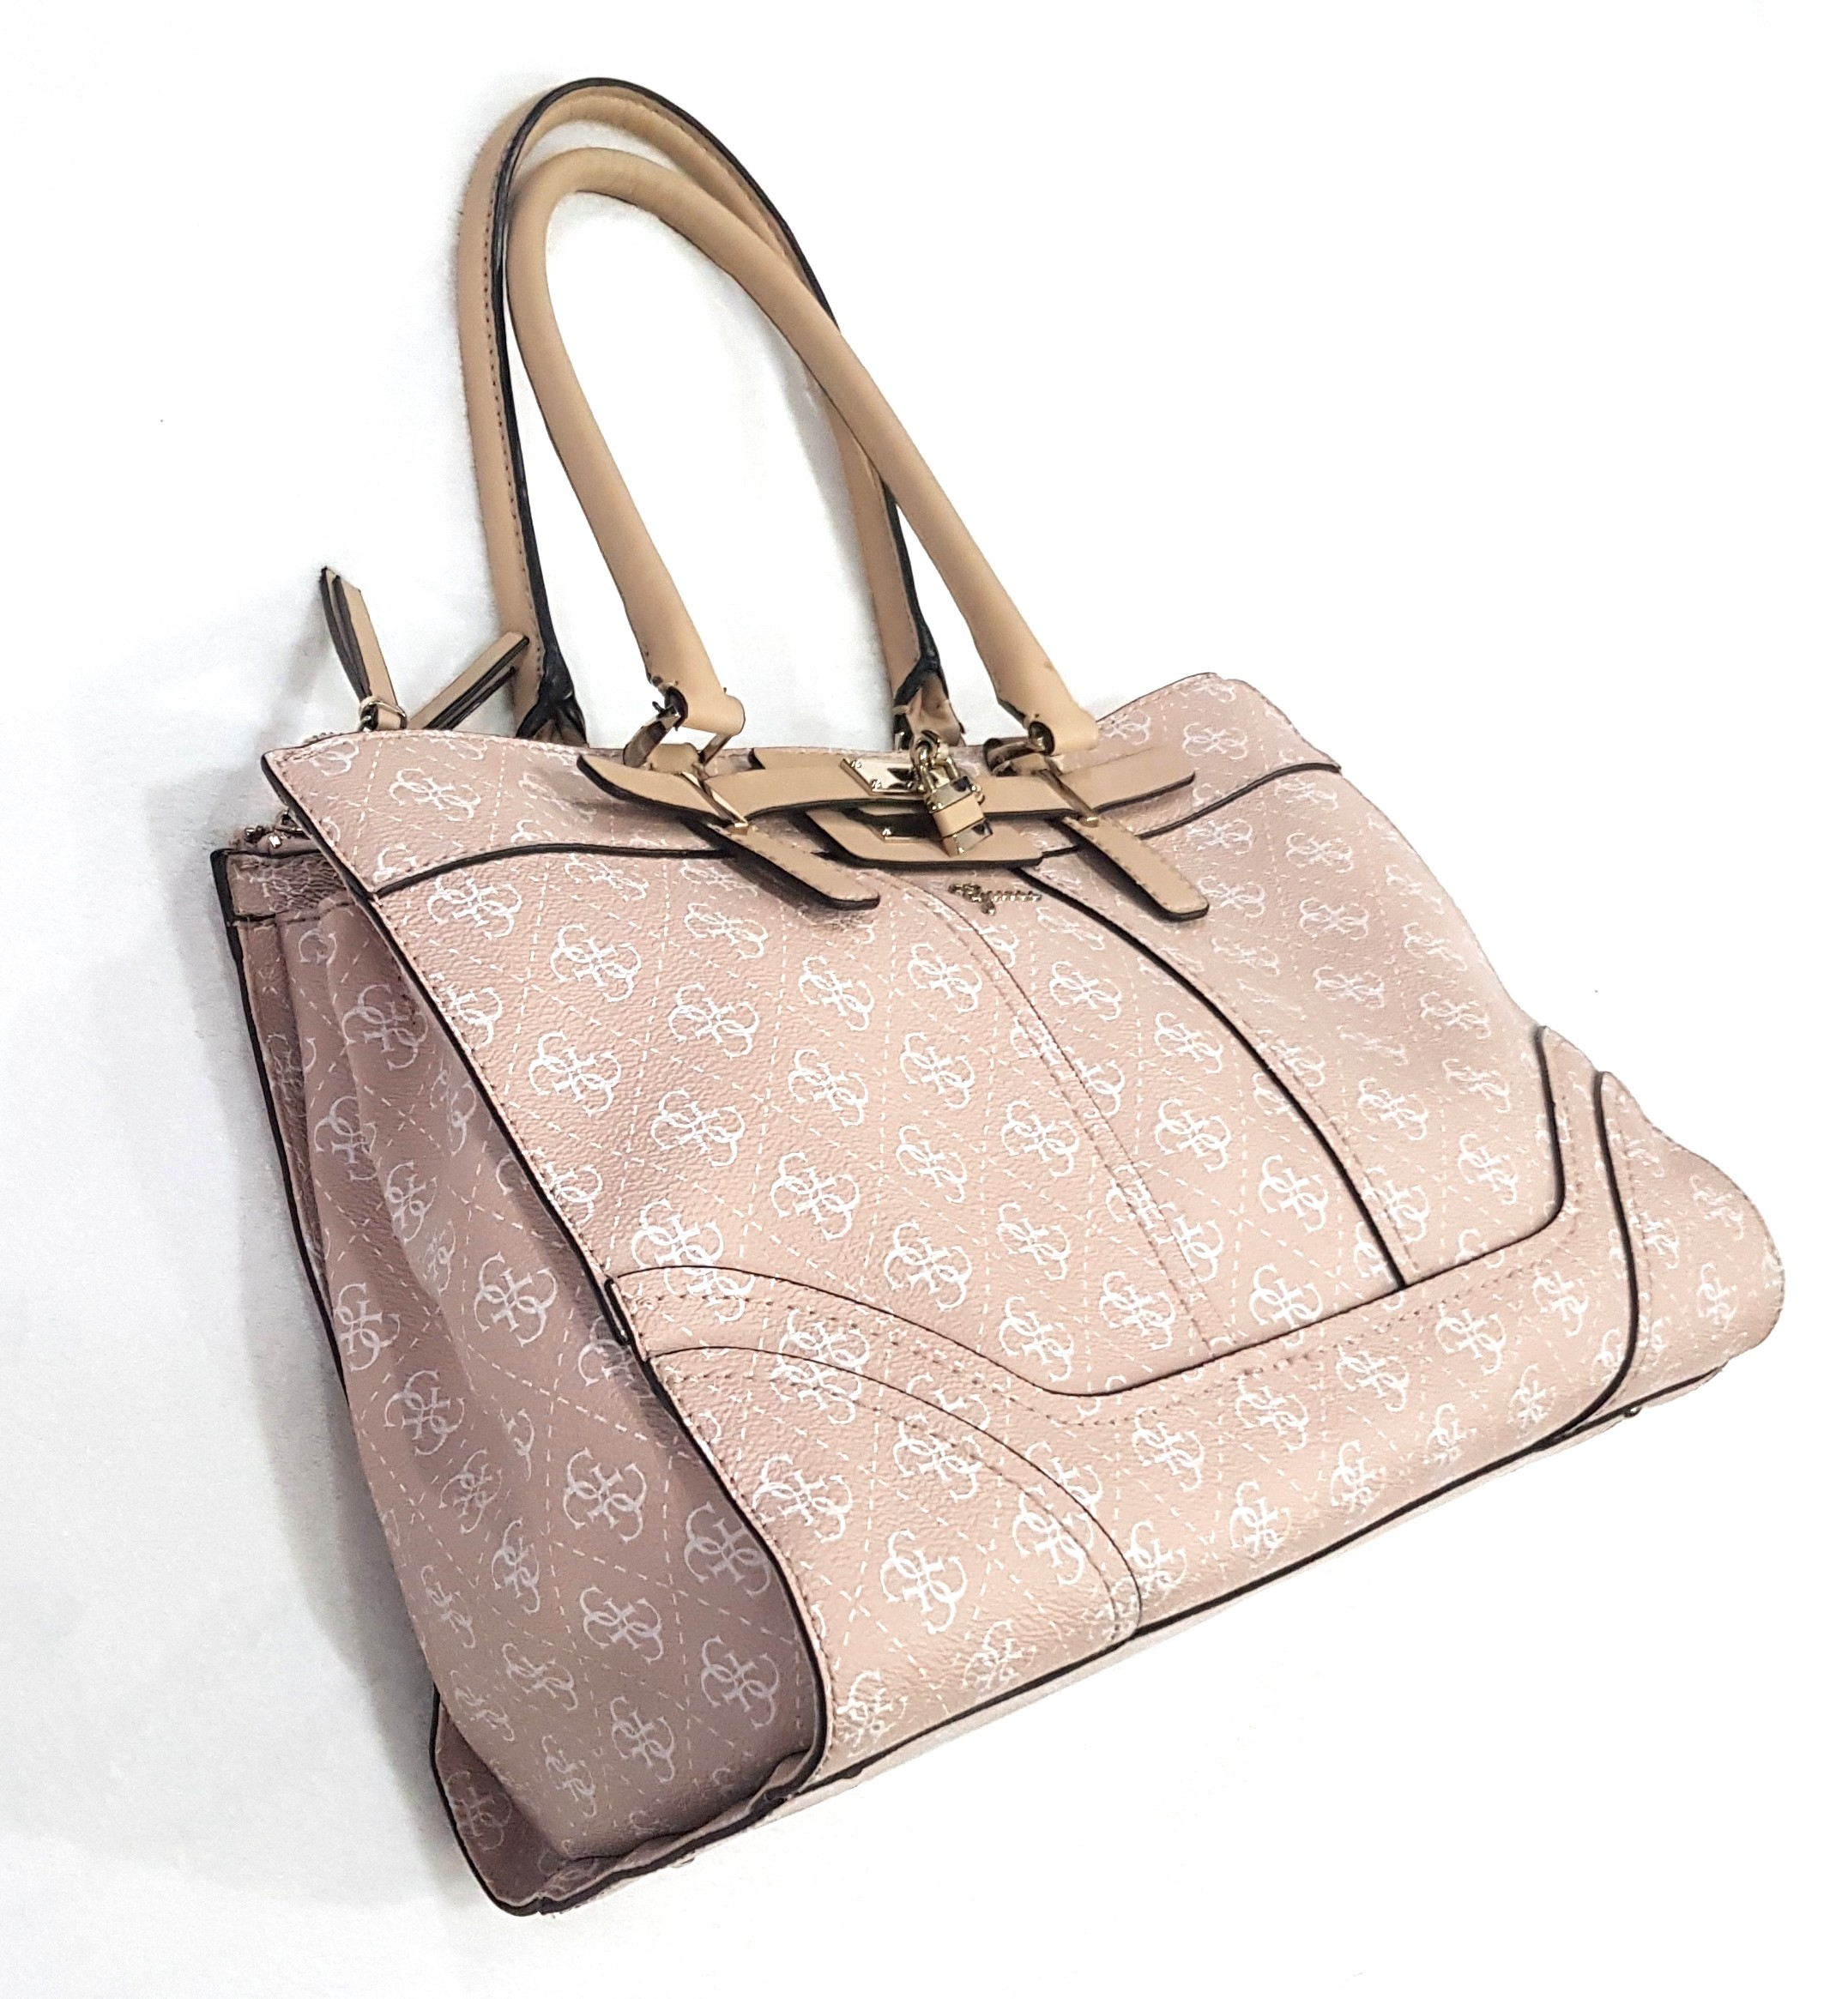 098b0b91b Free Shipping! Authentic GUESS Hand/Shoulder Bag, Luxury, Bags ...